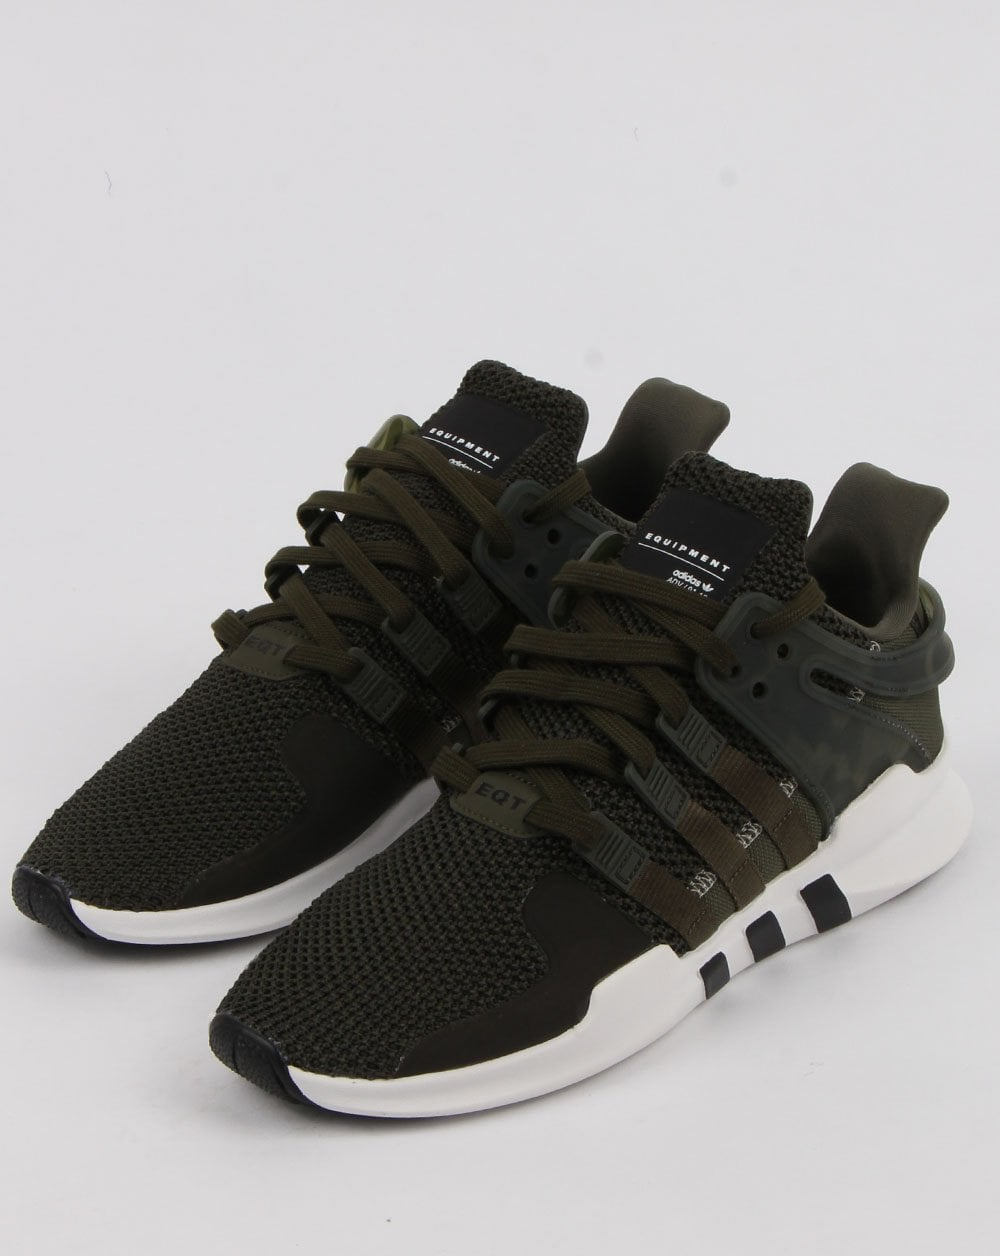 low priced 6ea90 ba374 Adidas Eqt Support Adv Night Cargo/white/black